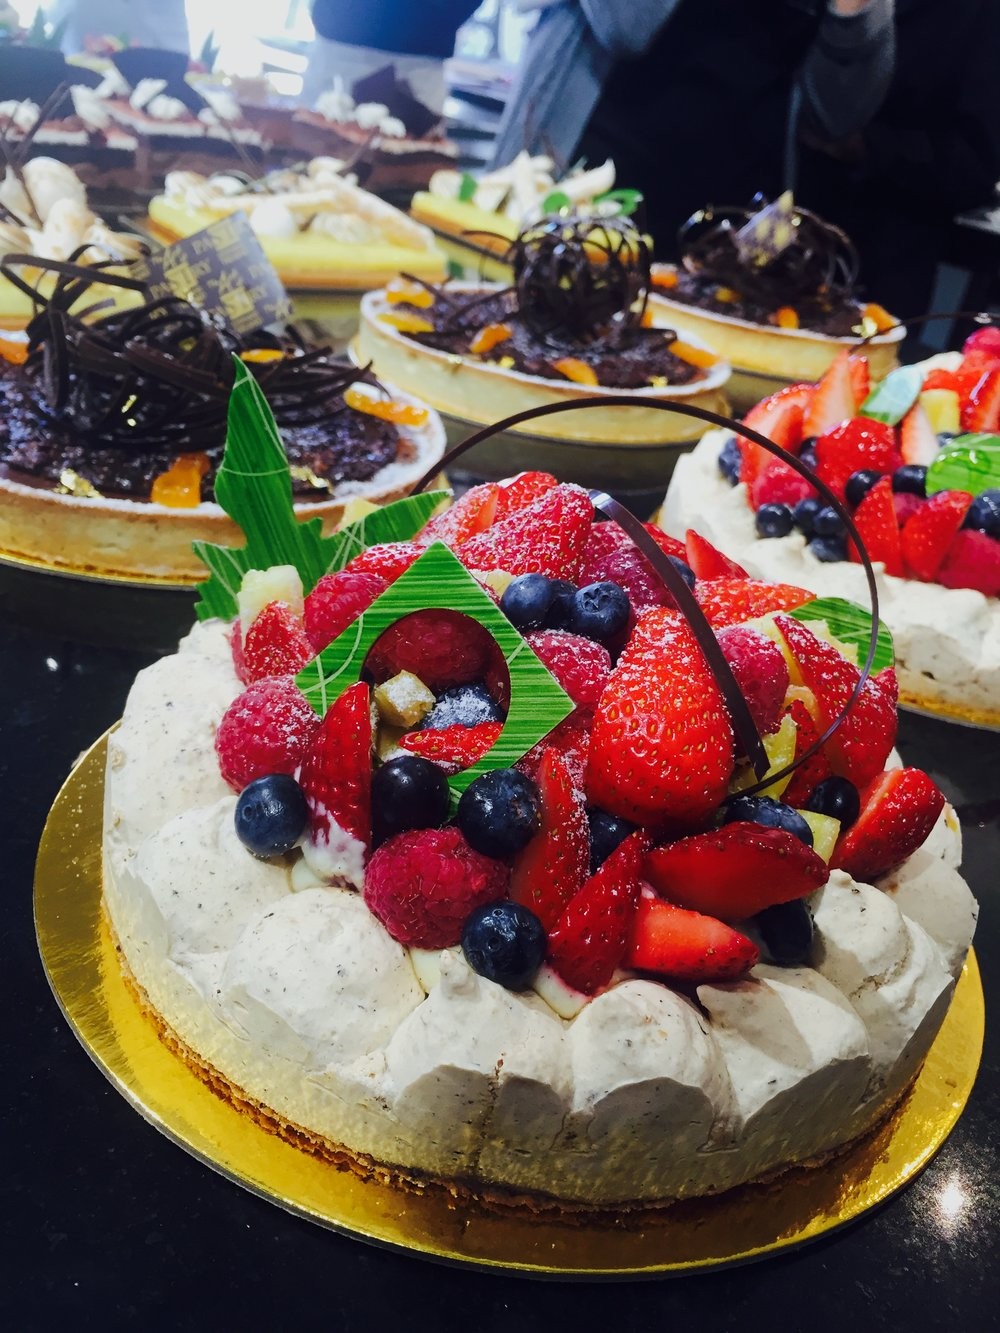 Week 2 | February 20 - 24, 2017 TRADITIONAL AND MODERN TARTS & CAKES In this course of study students will be exposed to foundational recipes, techniques and concepts of traditional cakes and tarts, as well as their modern interpretation and evolution. Utilizing the core skills of Baking Science students will begin to refine core pastry skills and become aware of critical components that comprise a solid pastry foundation. Tarts: Sablée Dough, Fruits Crémeux, Almond, Pear, Lemon, and Exotic. Cakes: Almond Dacquoise, Chocolate Sponge, Apple Tatin, Frasier, St Honoré, and Black Forest.